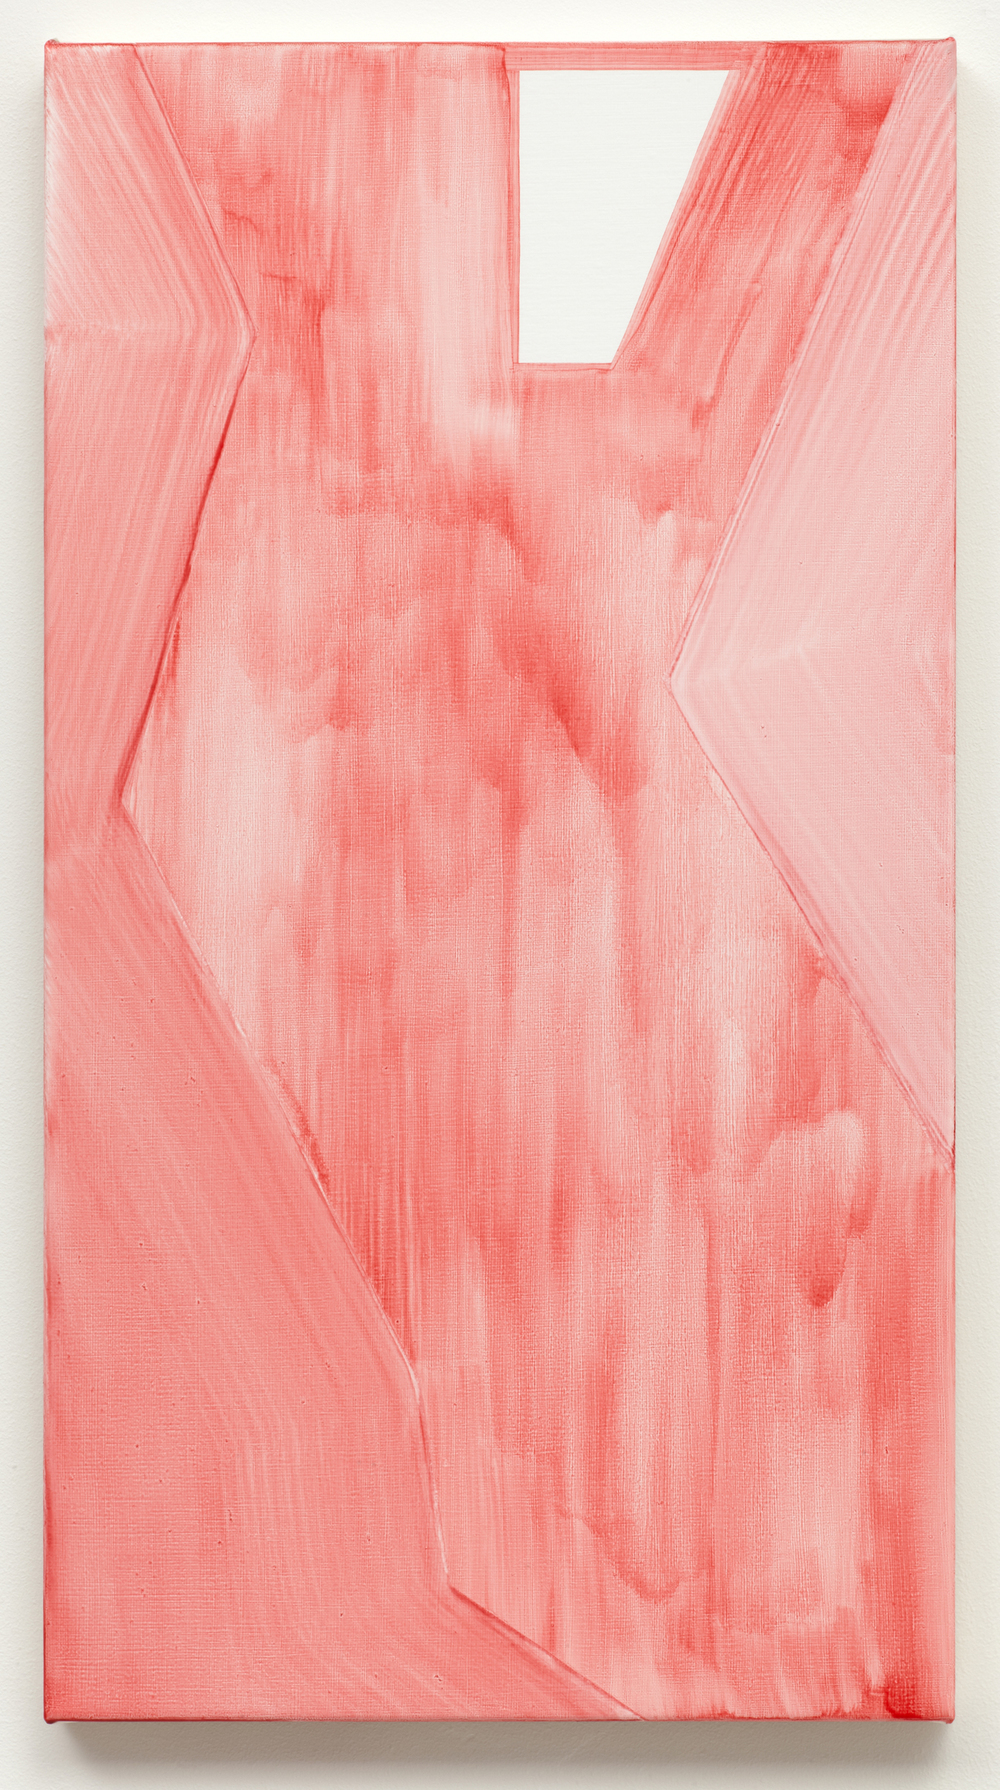 Untitled (Red/Pink) 2012